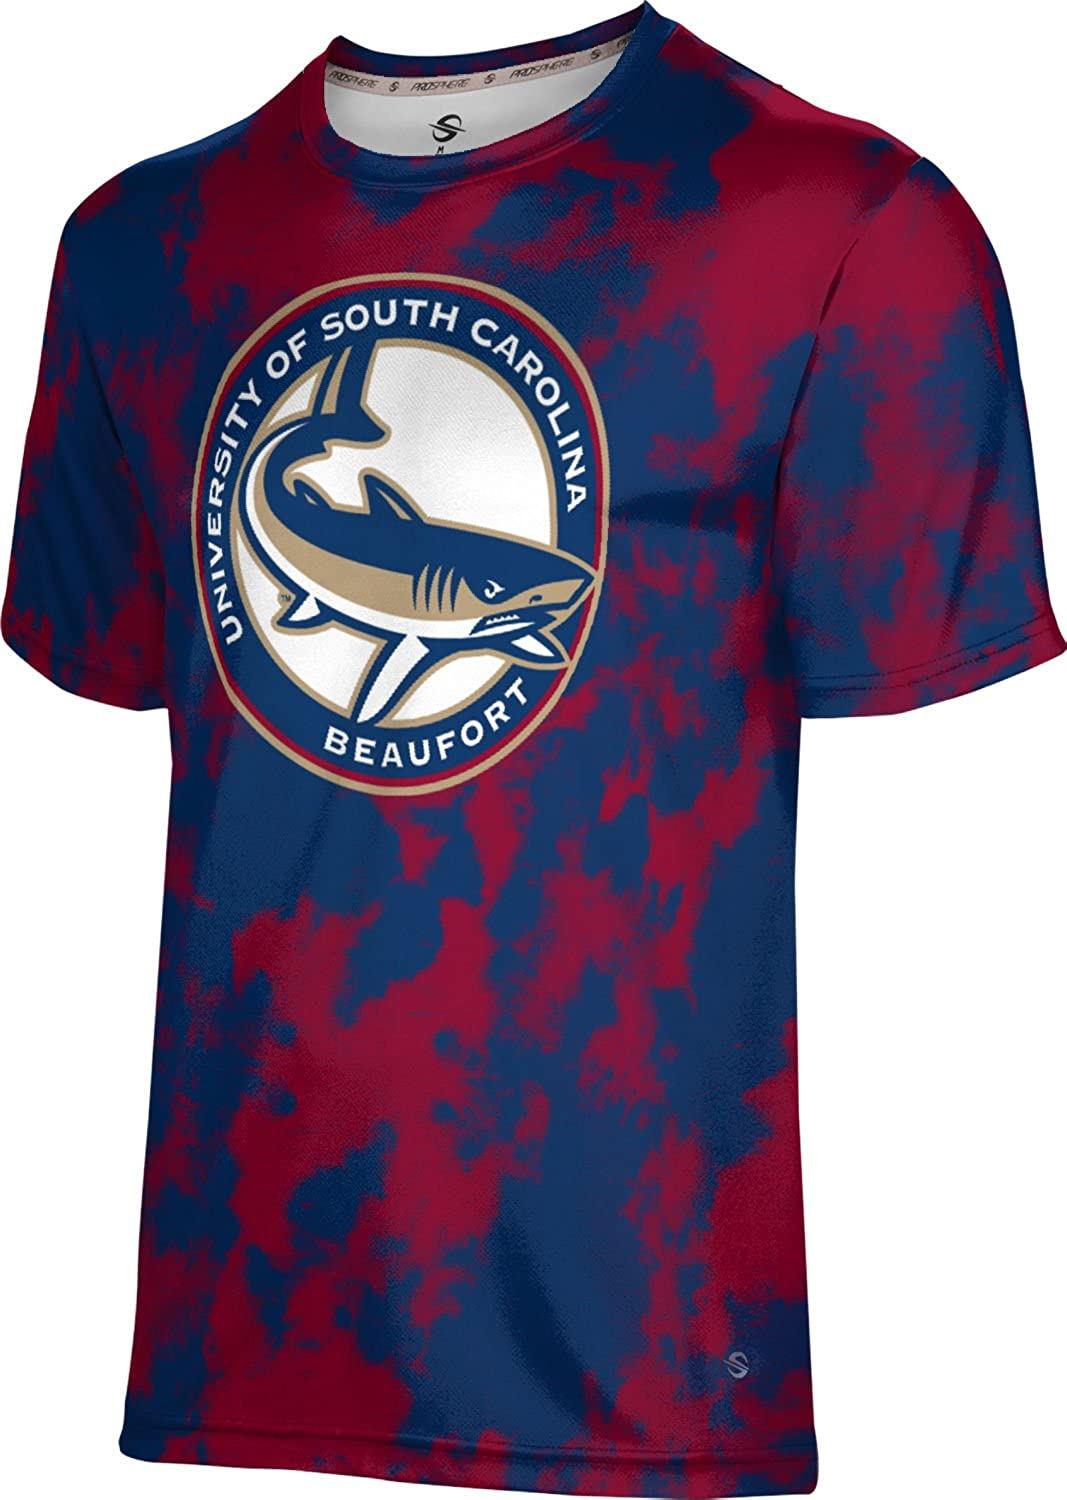 Super special price University of South Carolina T-Shirt Beaufort Men's Performance Spring new work one after another